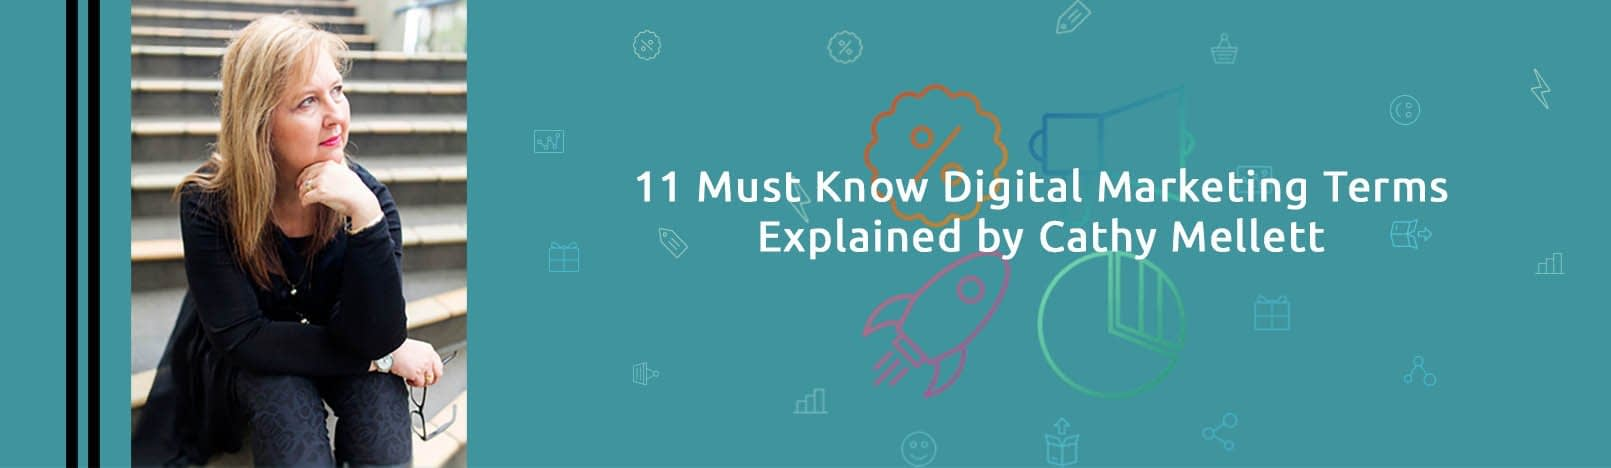 11 Must Know Digital Marketing Terms Explained by Cathy Mellett